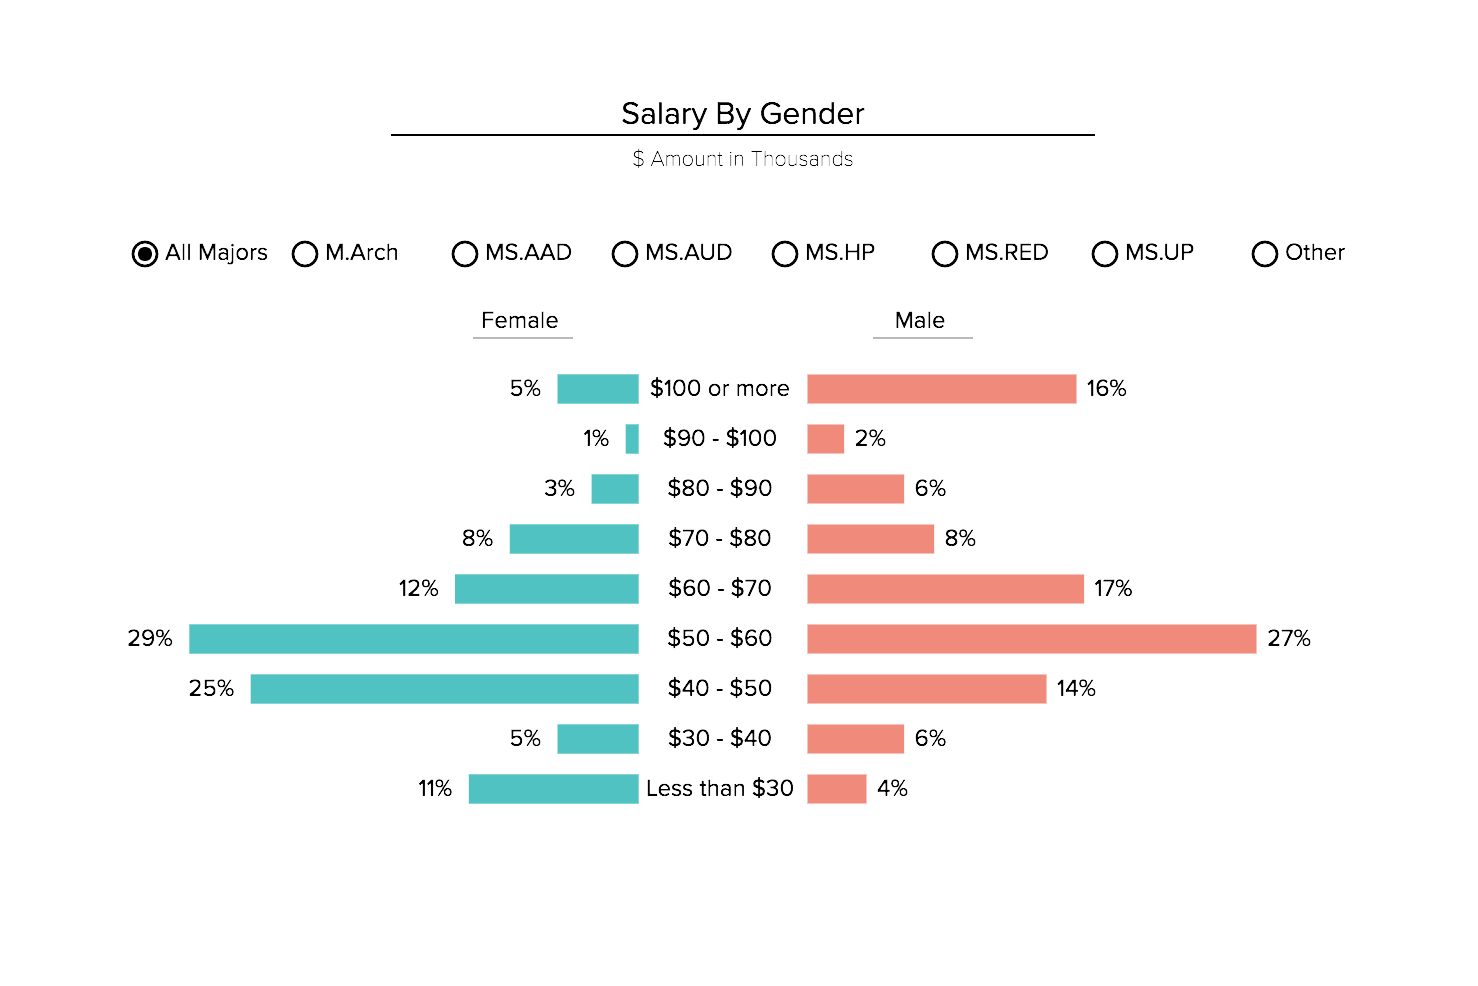 Annual salary by gender